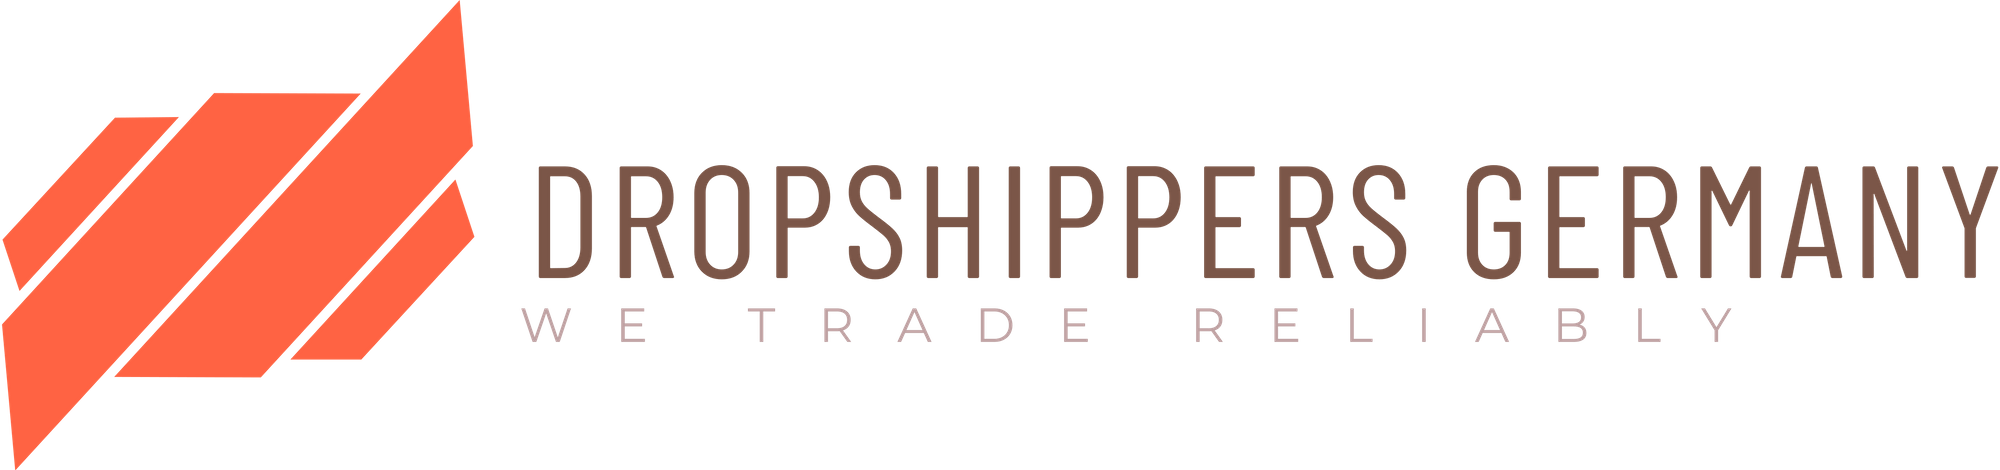 Dropshippers Germany